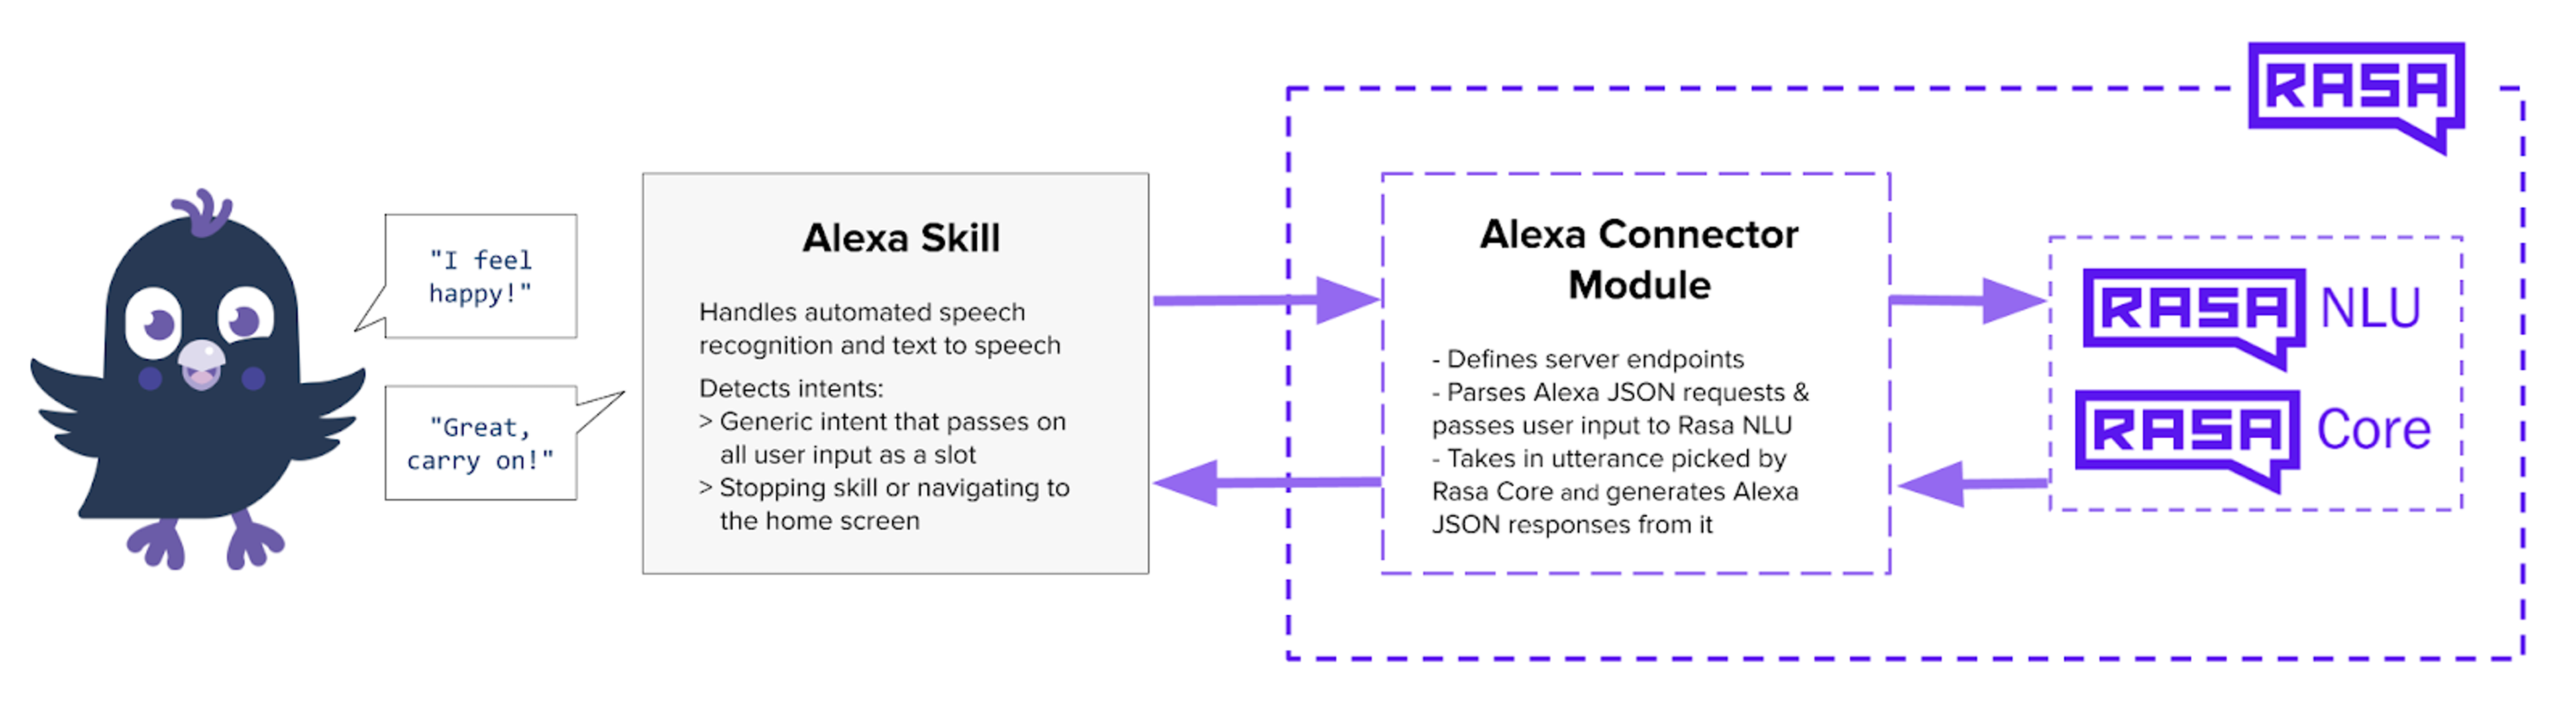 """Sara, the Rasa Mascot, says """"I feel happy"""". That is passed through the Alexa Skill, which handles speech recognition. From there the information is passed into rasa through the Alexa Connector, then Rasa NLU and COre, where the response is generated. From there the response passes through the Alexa Connector Module again, then to the Alexa Skill, which reads the response """"Great, carry on!"""" to the user."""